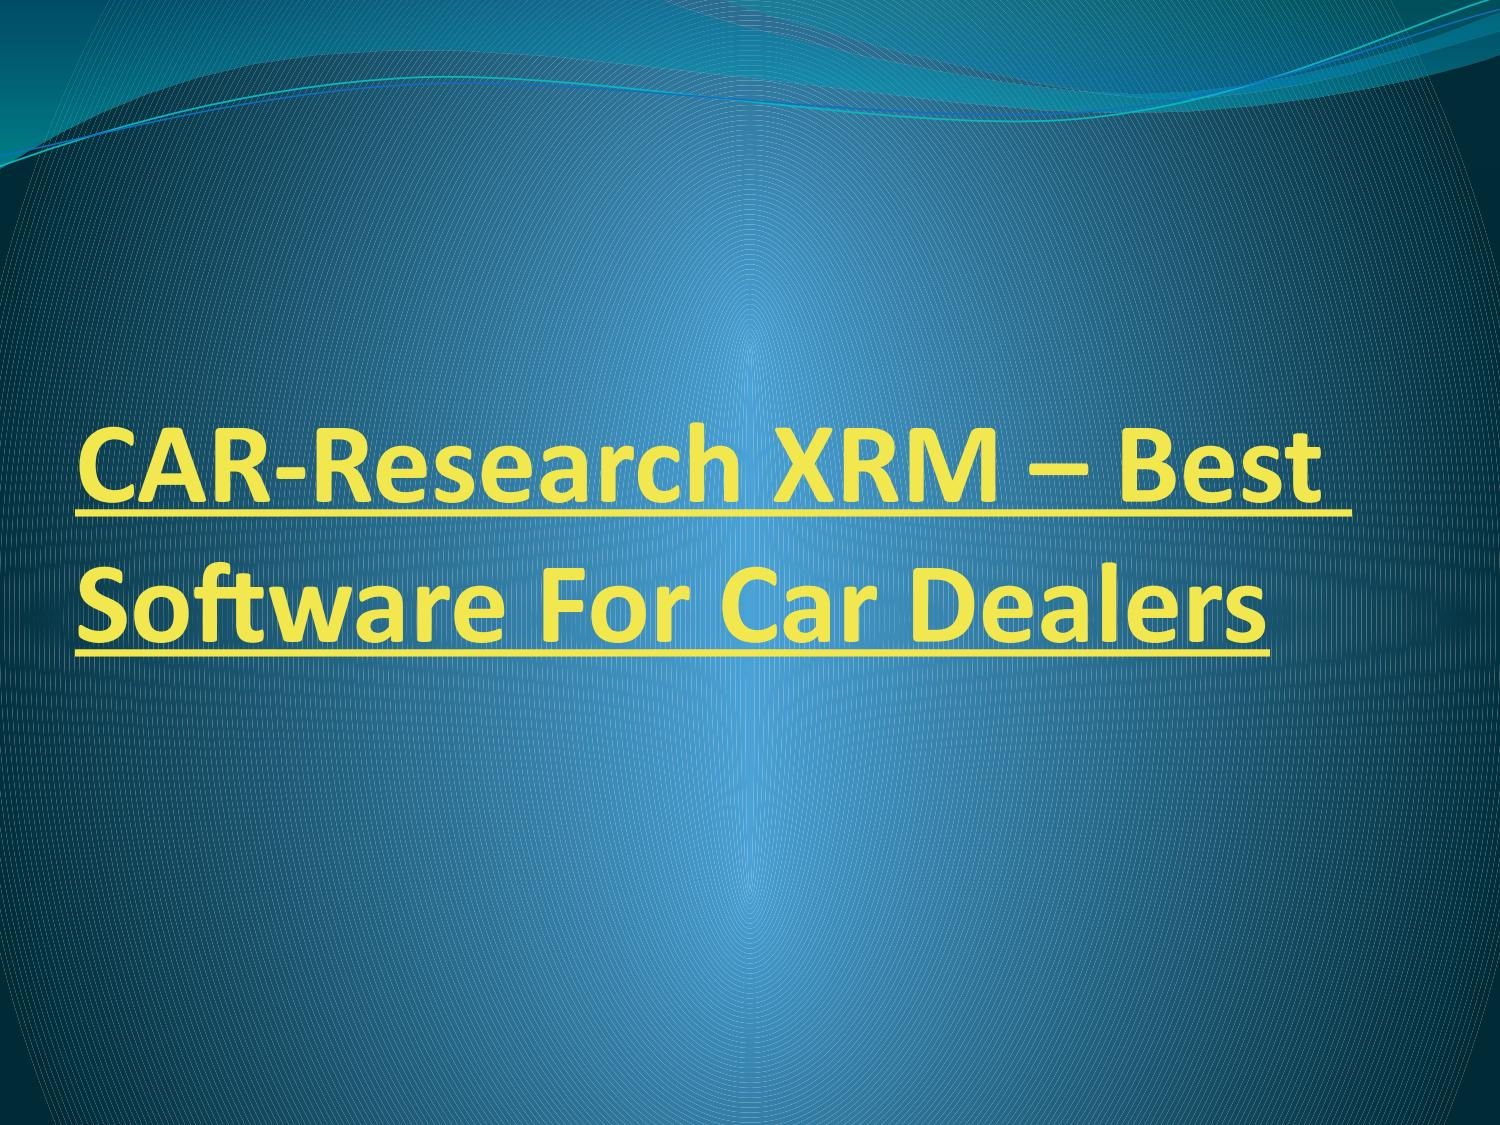 Car Research Xrm >> Car Research Xrm Best Software For Car Dealers By